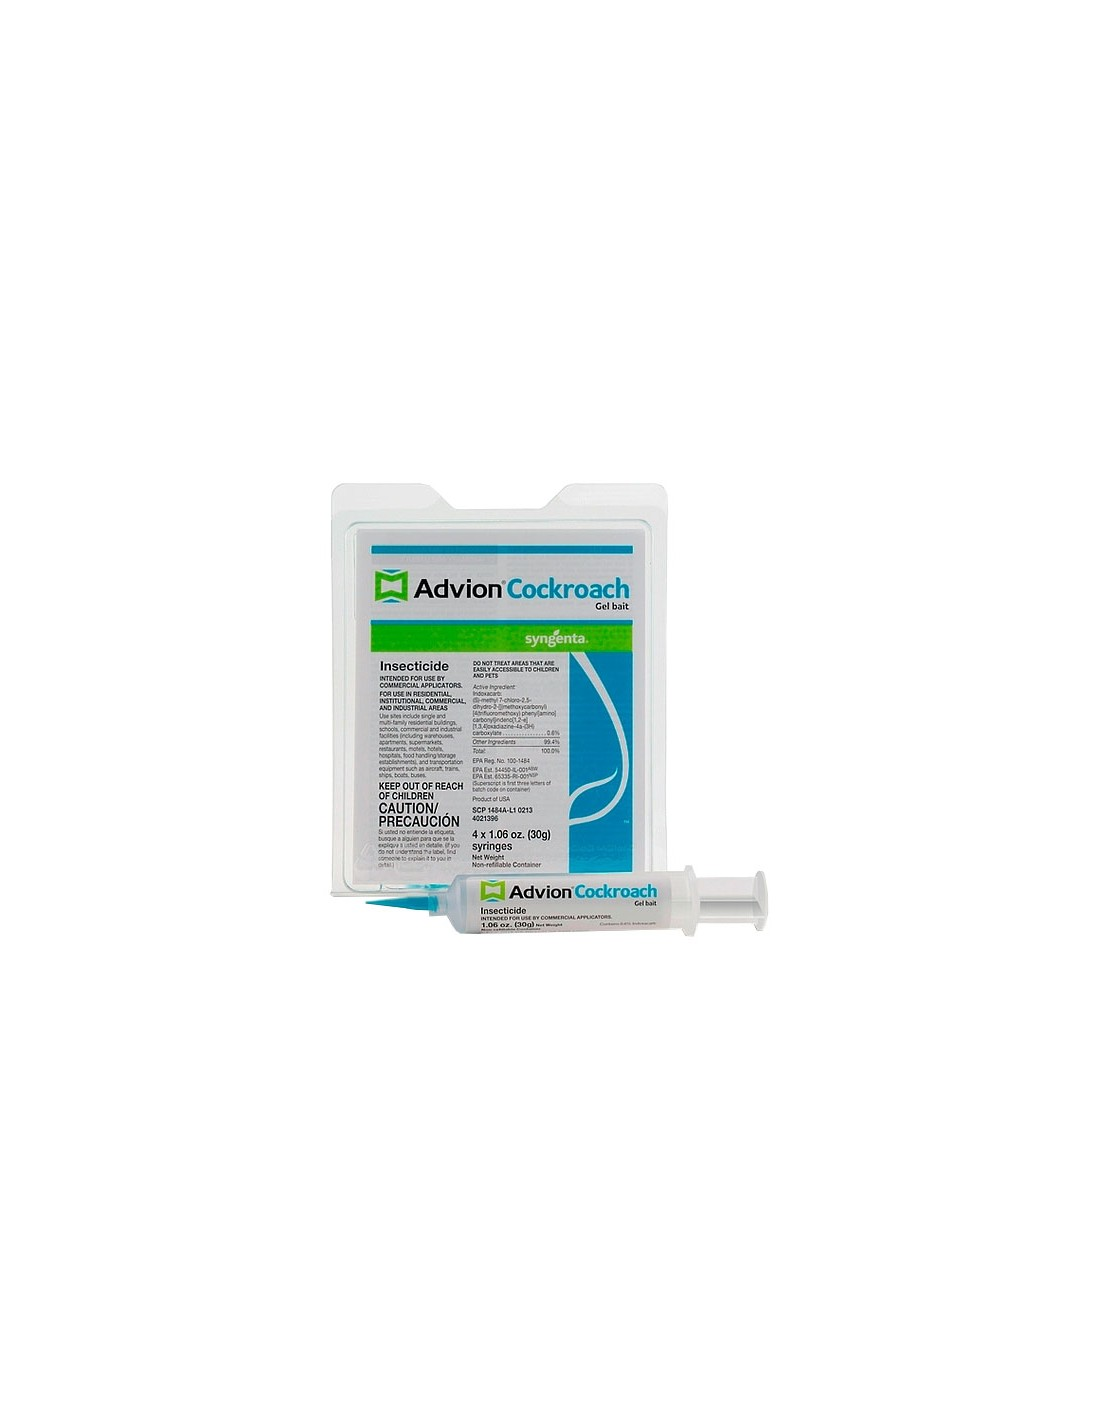 I live in Toronto,Canada and I am looking for Advion Cockroach Bait , do you guys deliver to canada